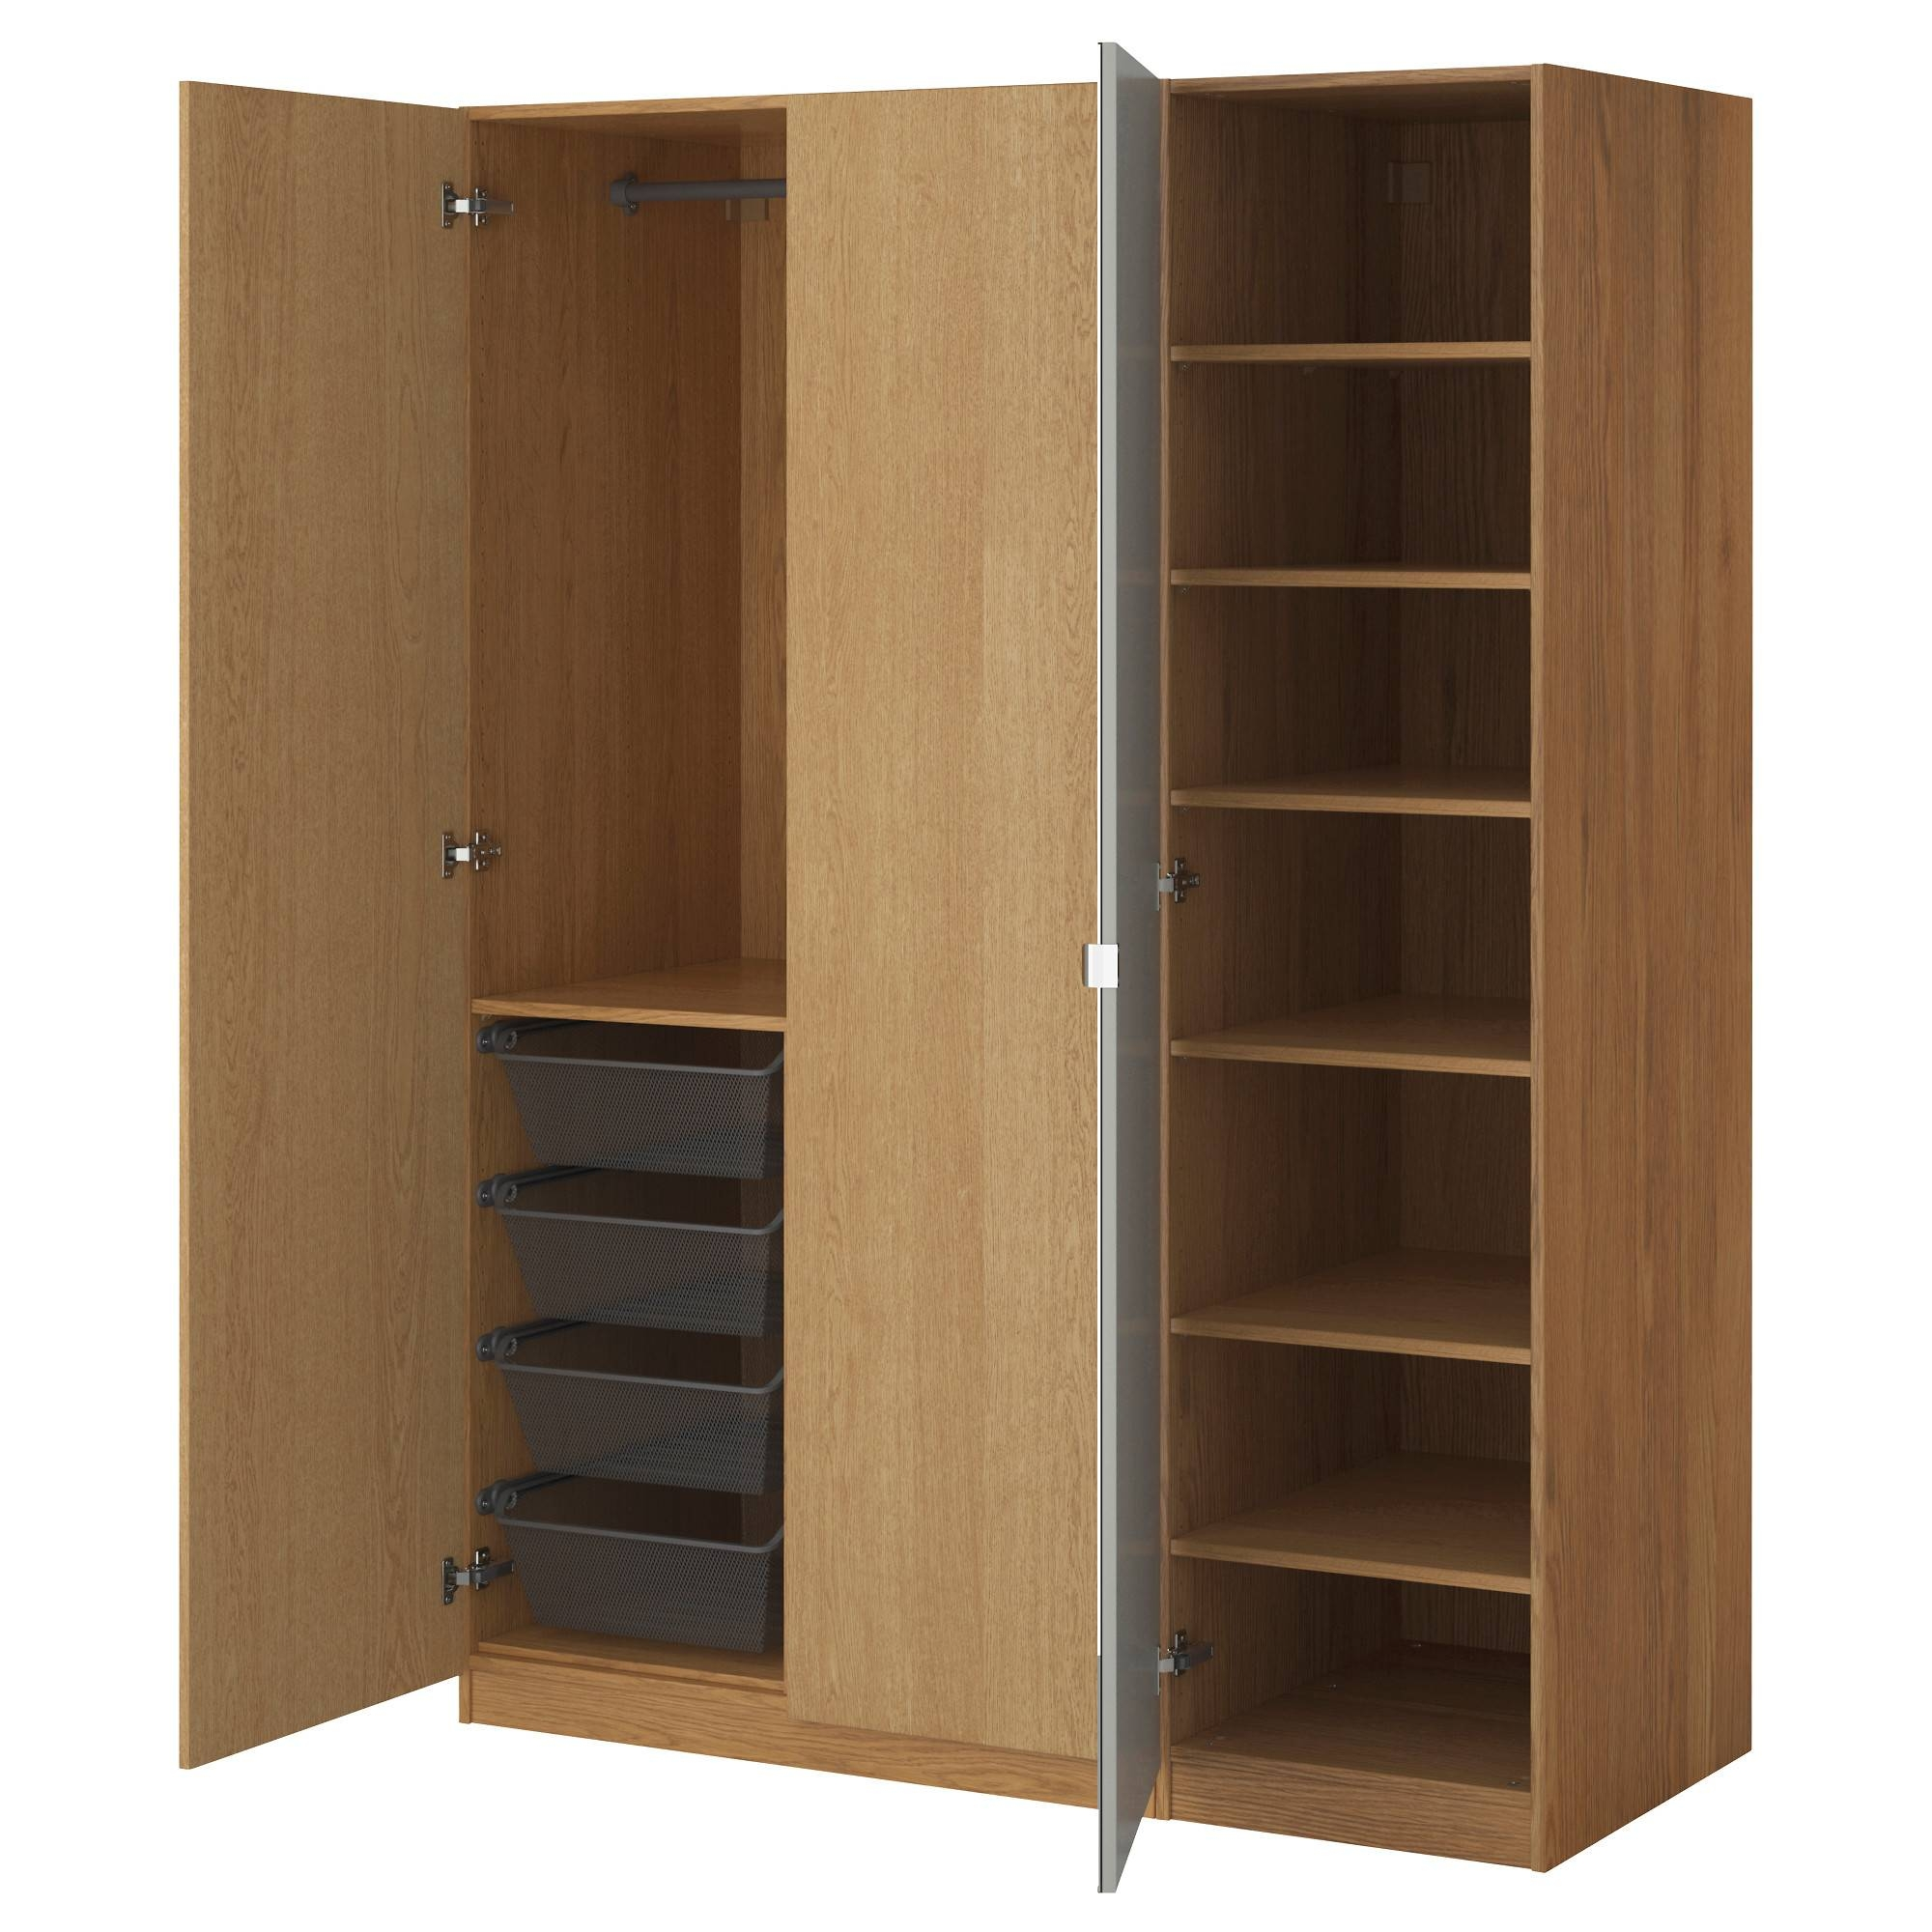 Wardrobes | Ikea regarding Oak Wardrobes for Sale (Image 15 of 15)